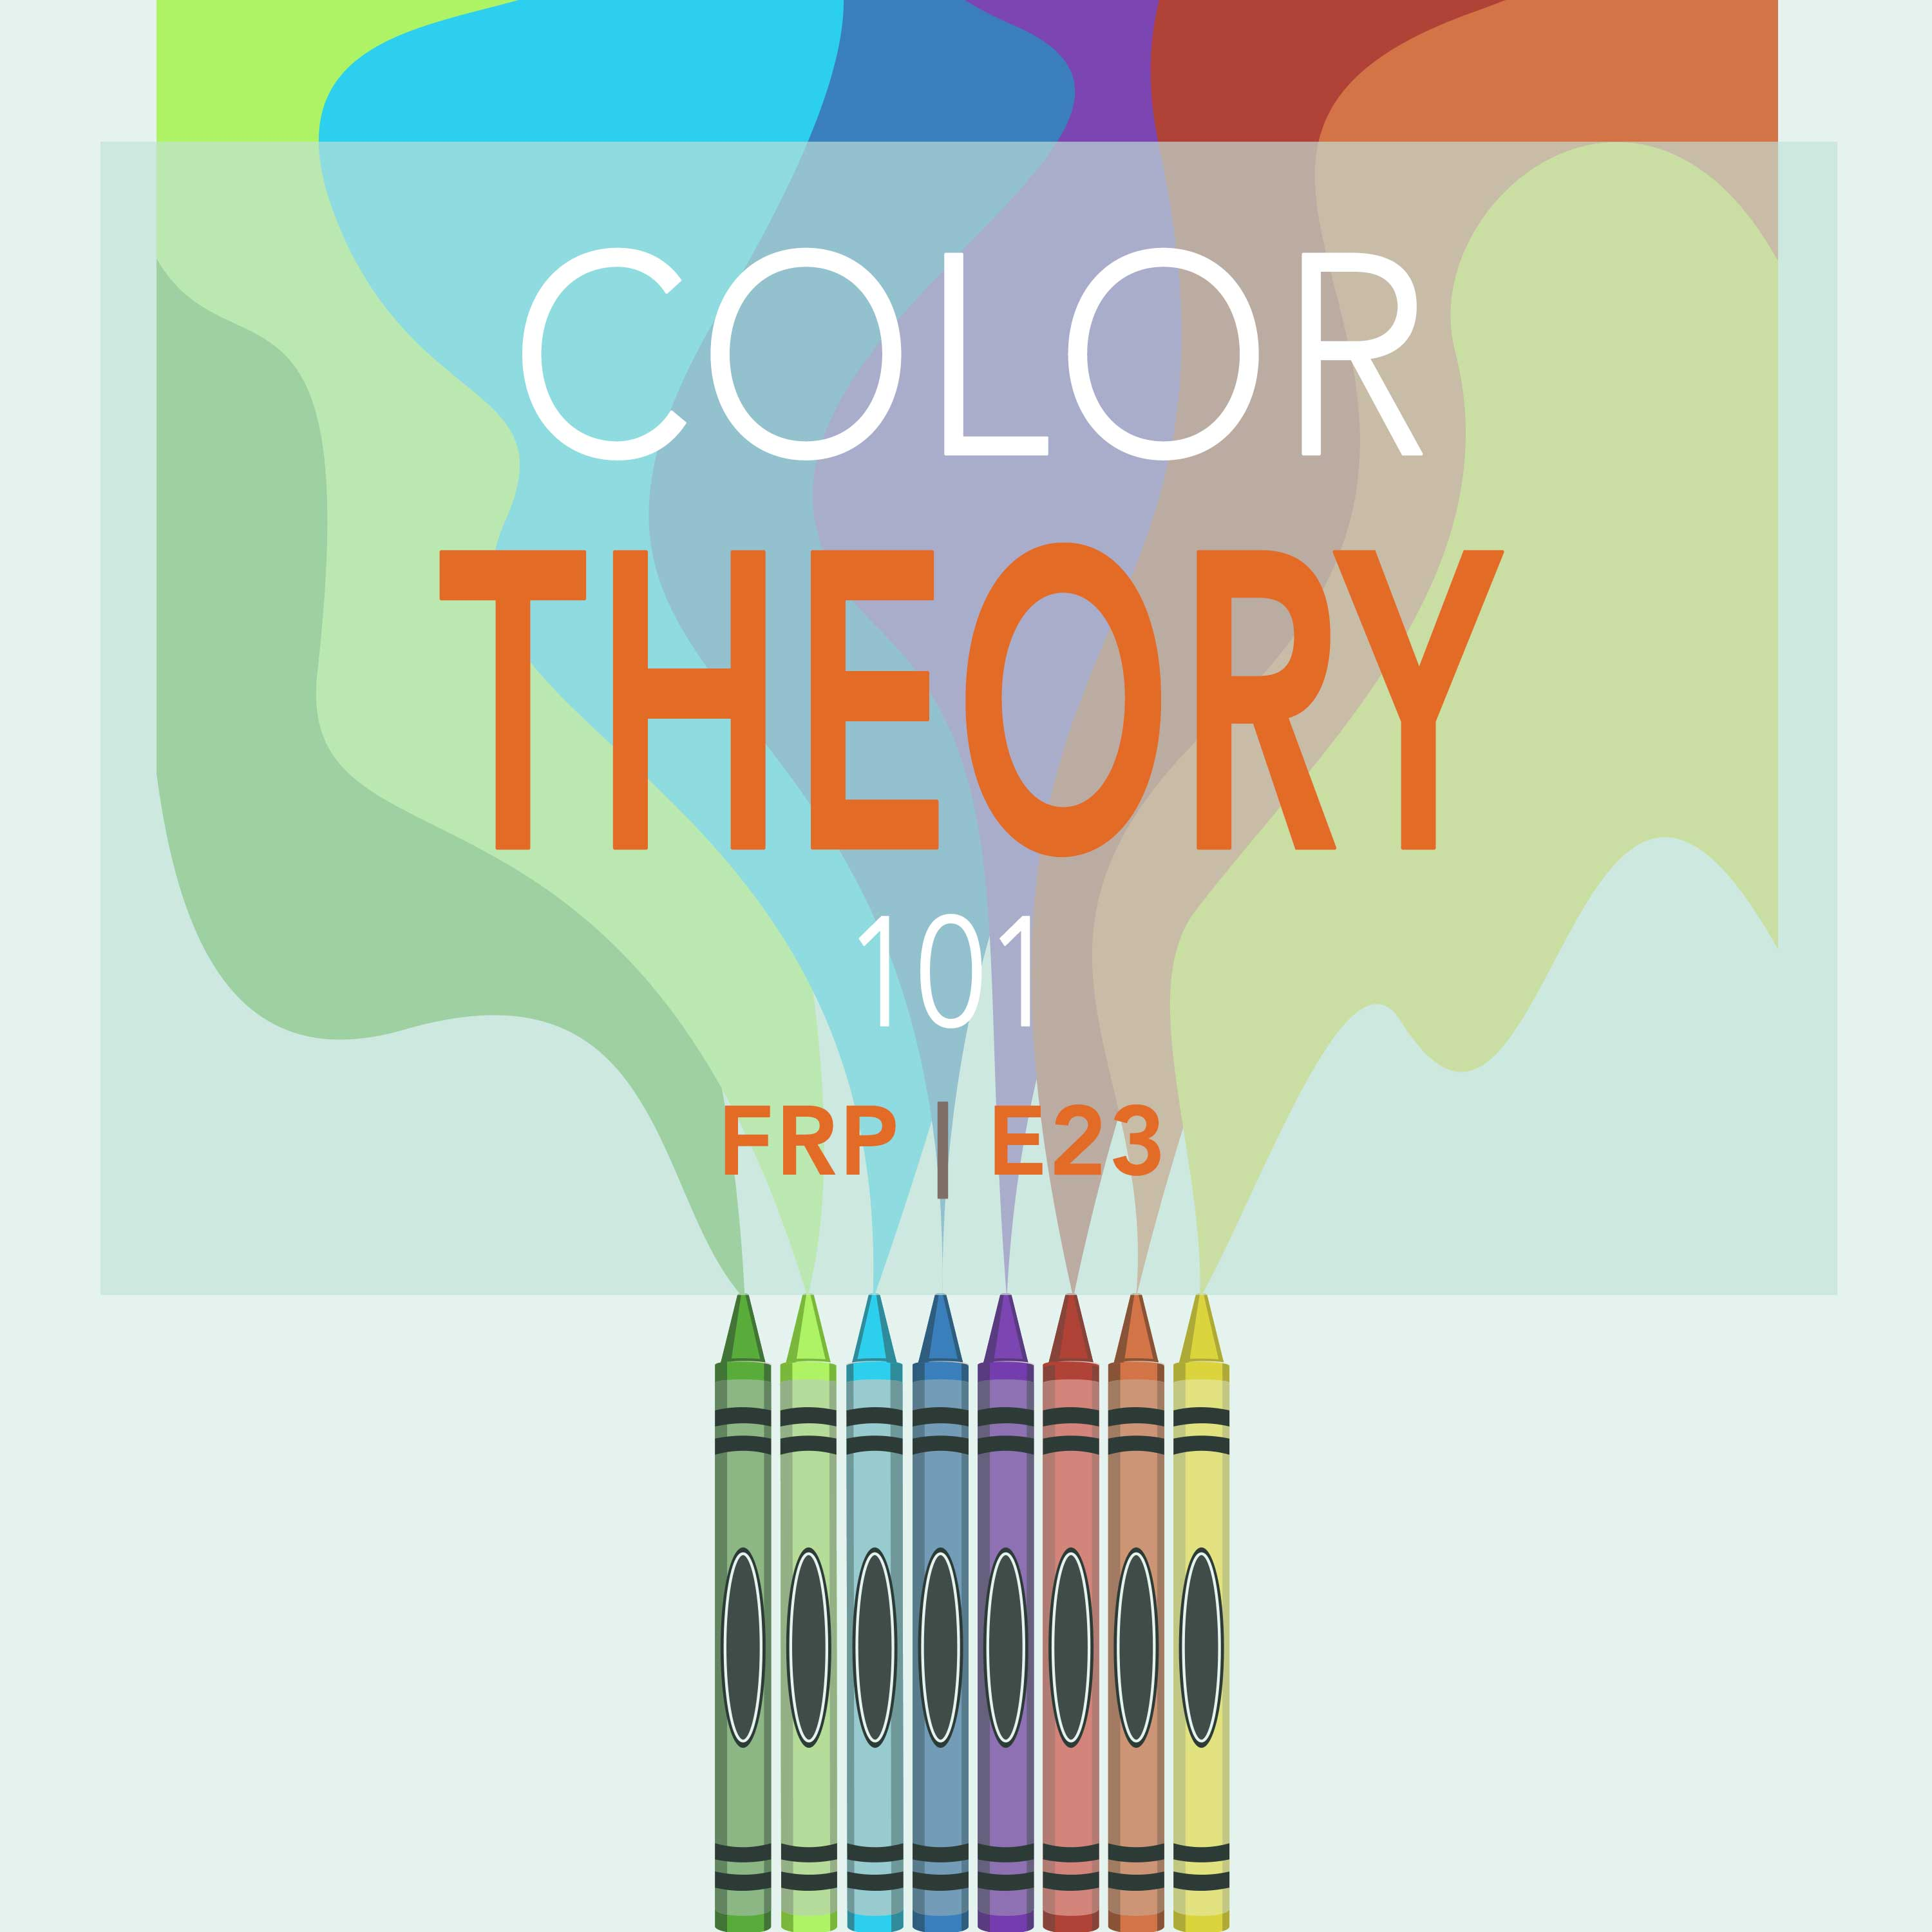 fi-color-theory-101-podcast